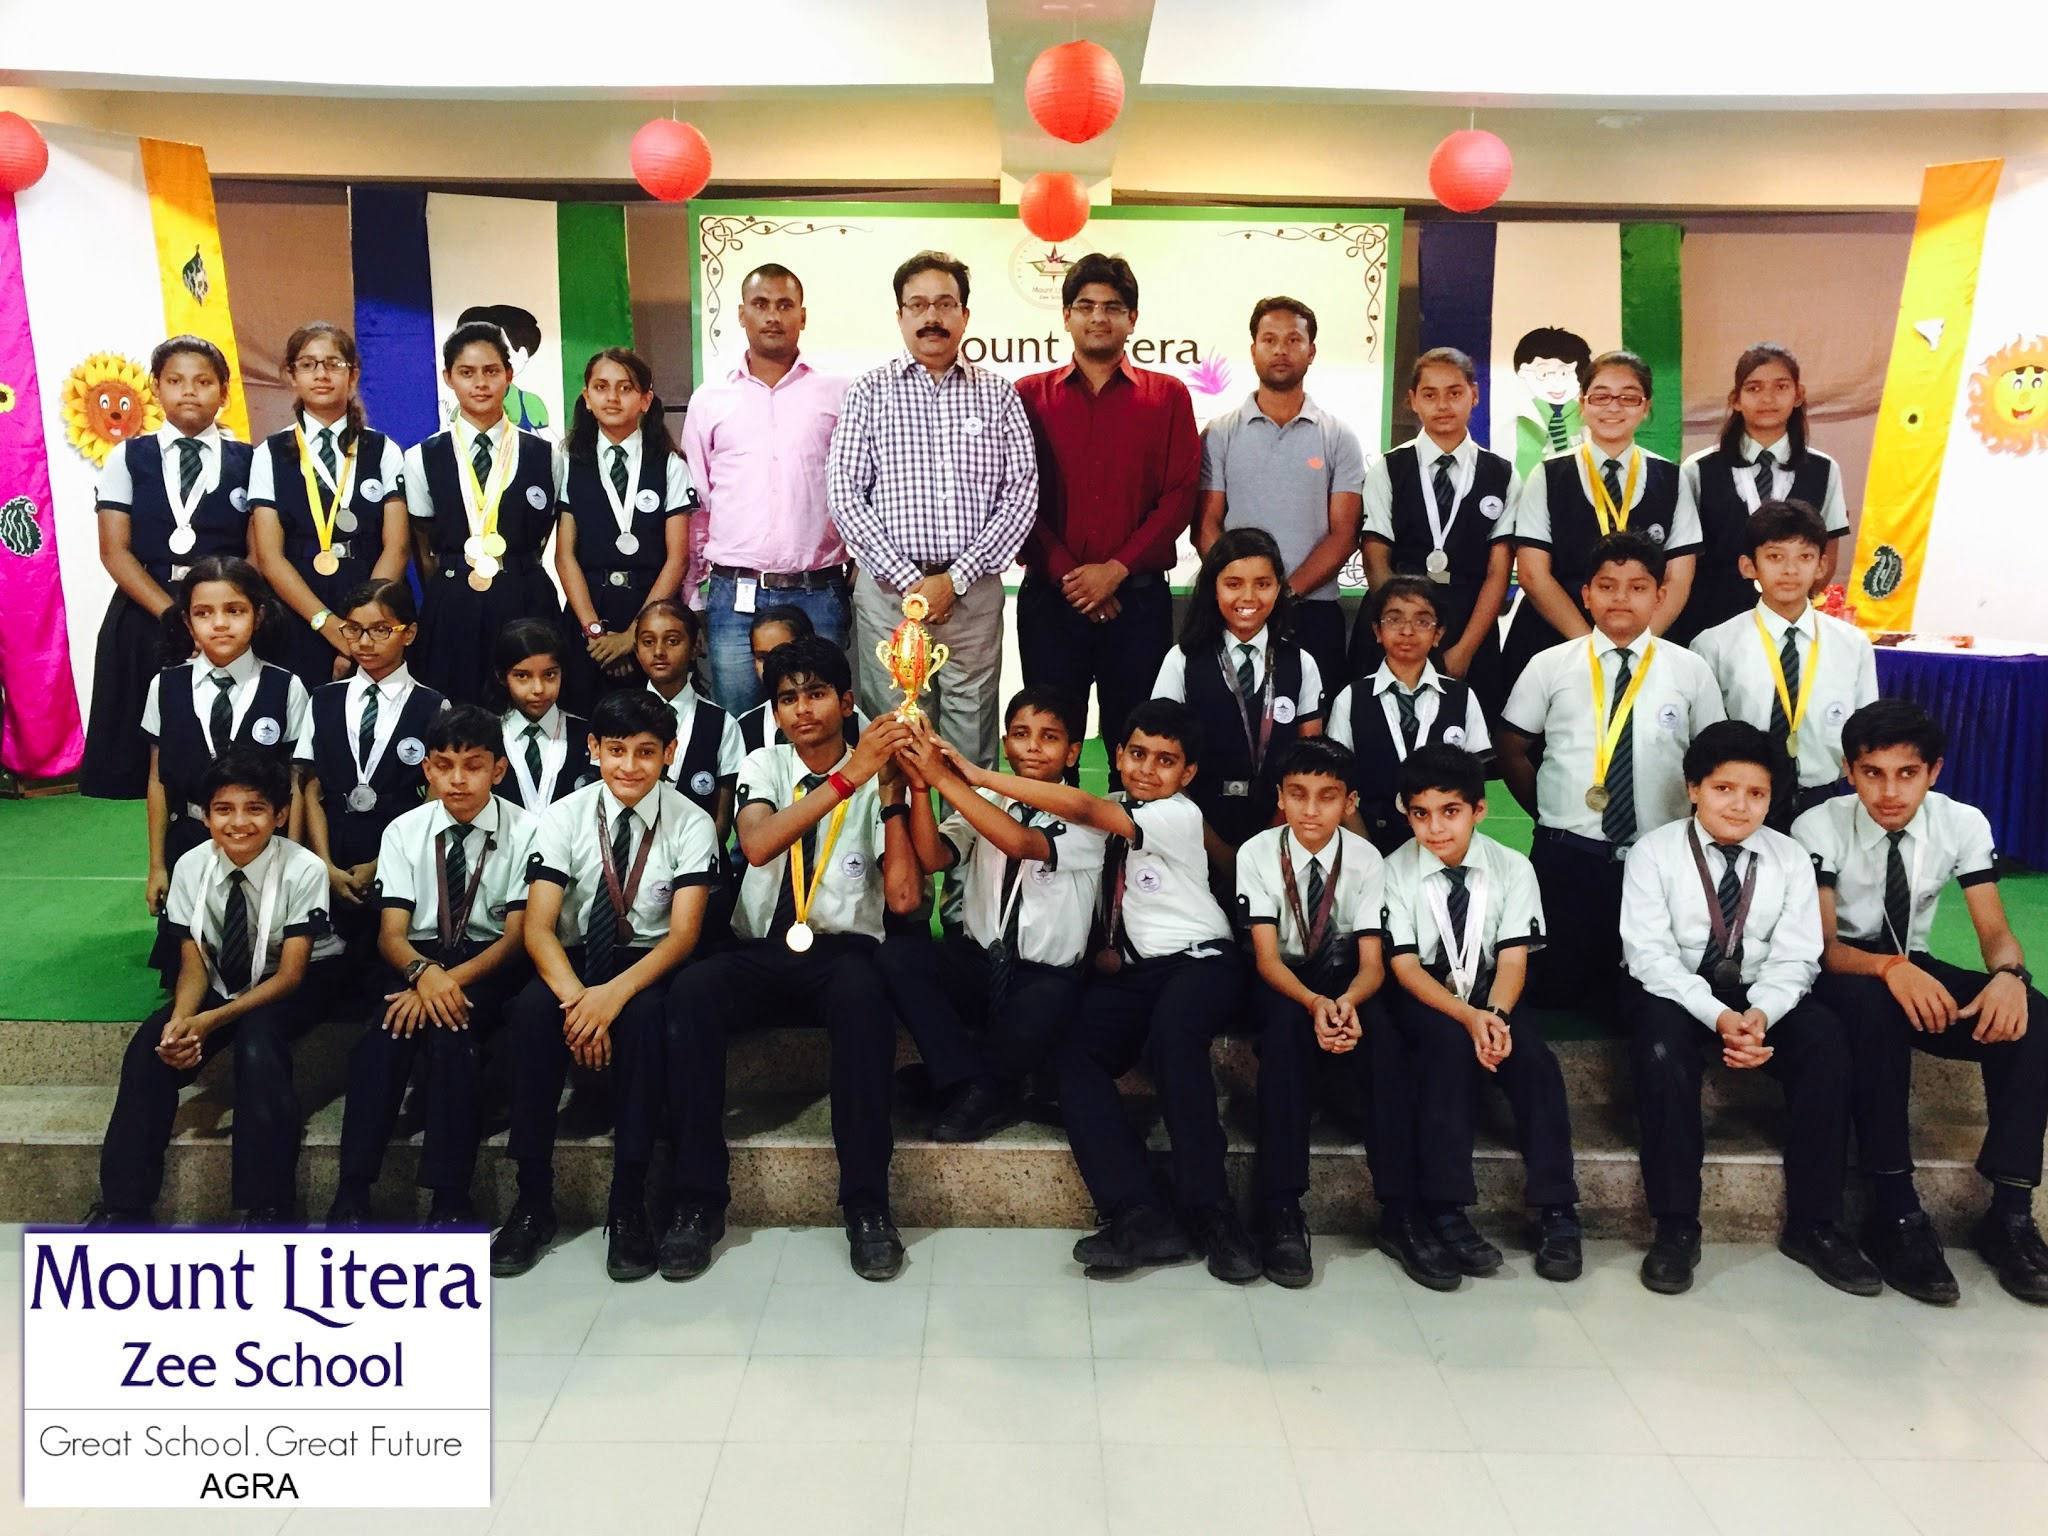 2nd District Student Olympic Association Mount Litera Zee School